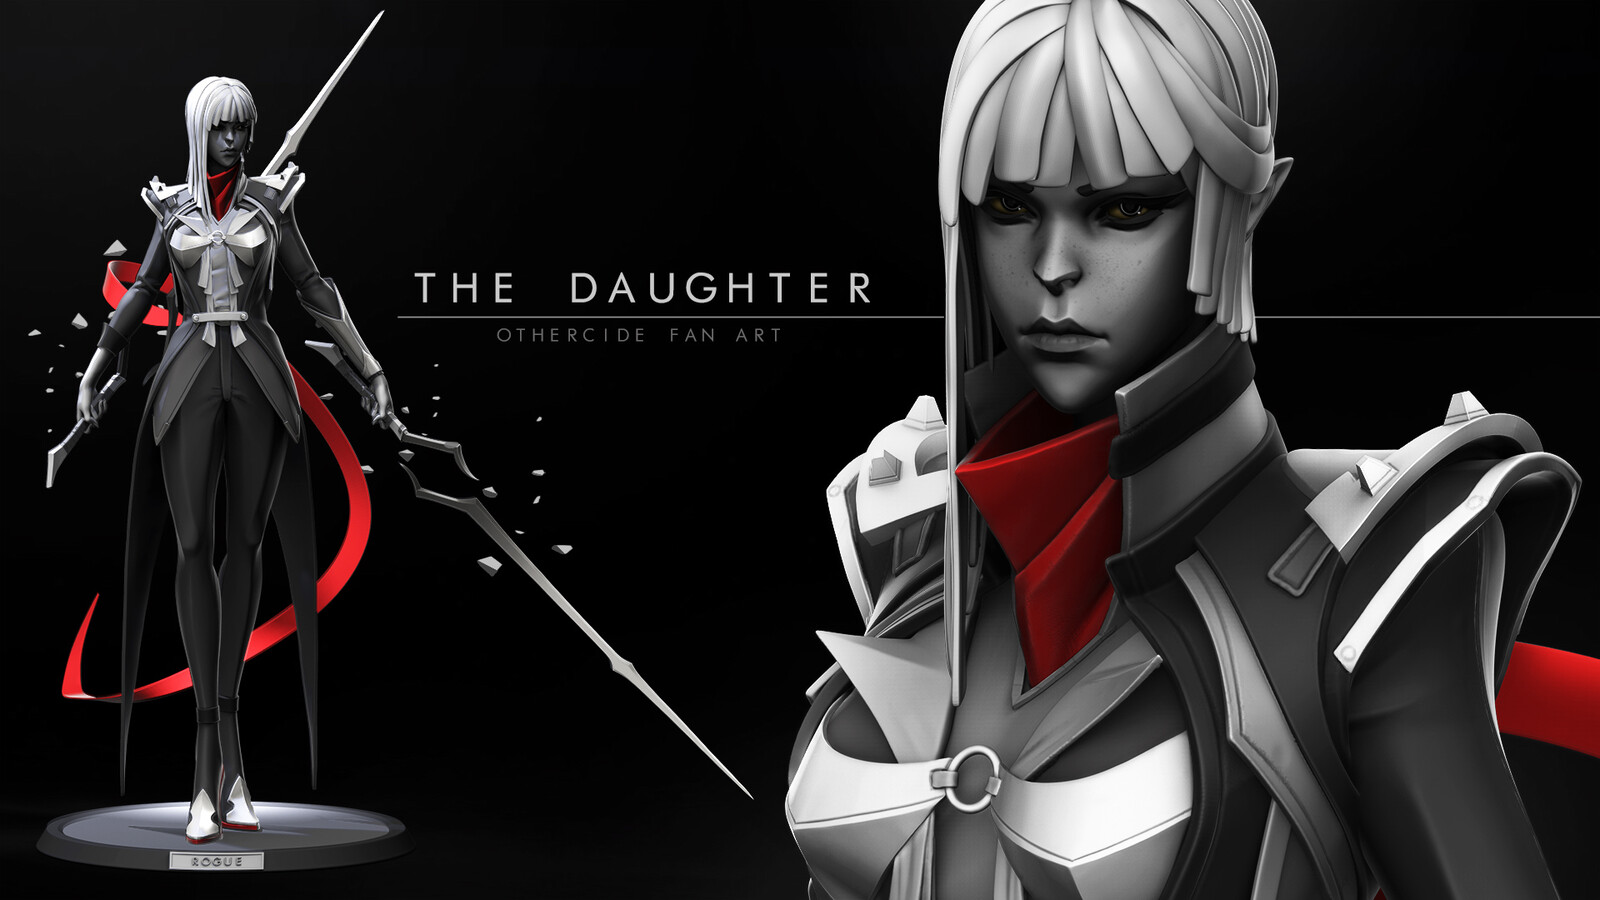 - THE DAUGHTER -